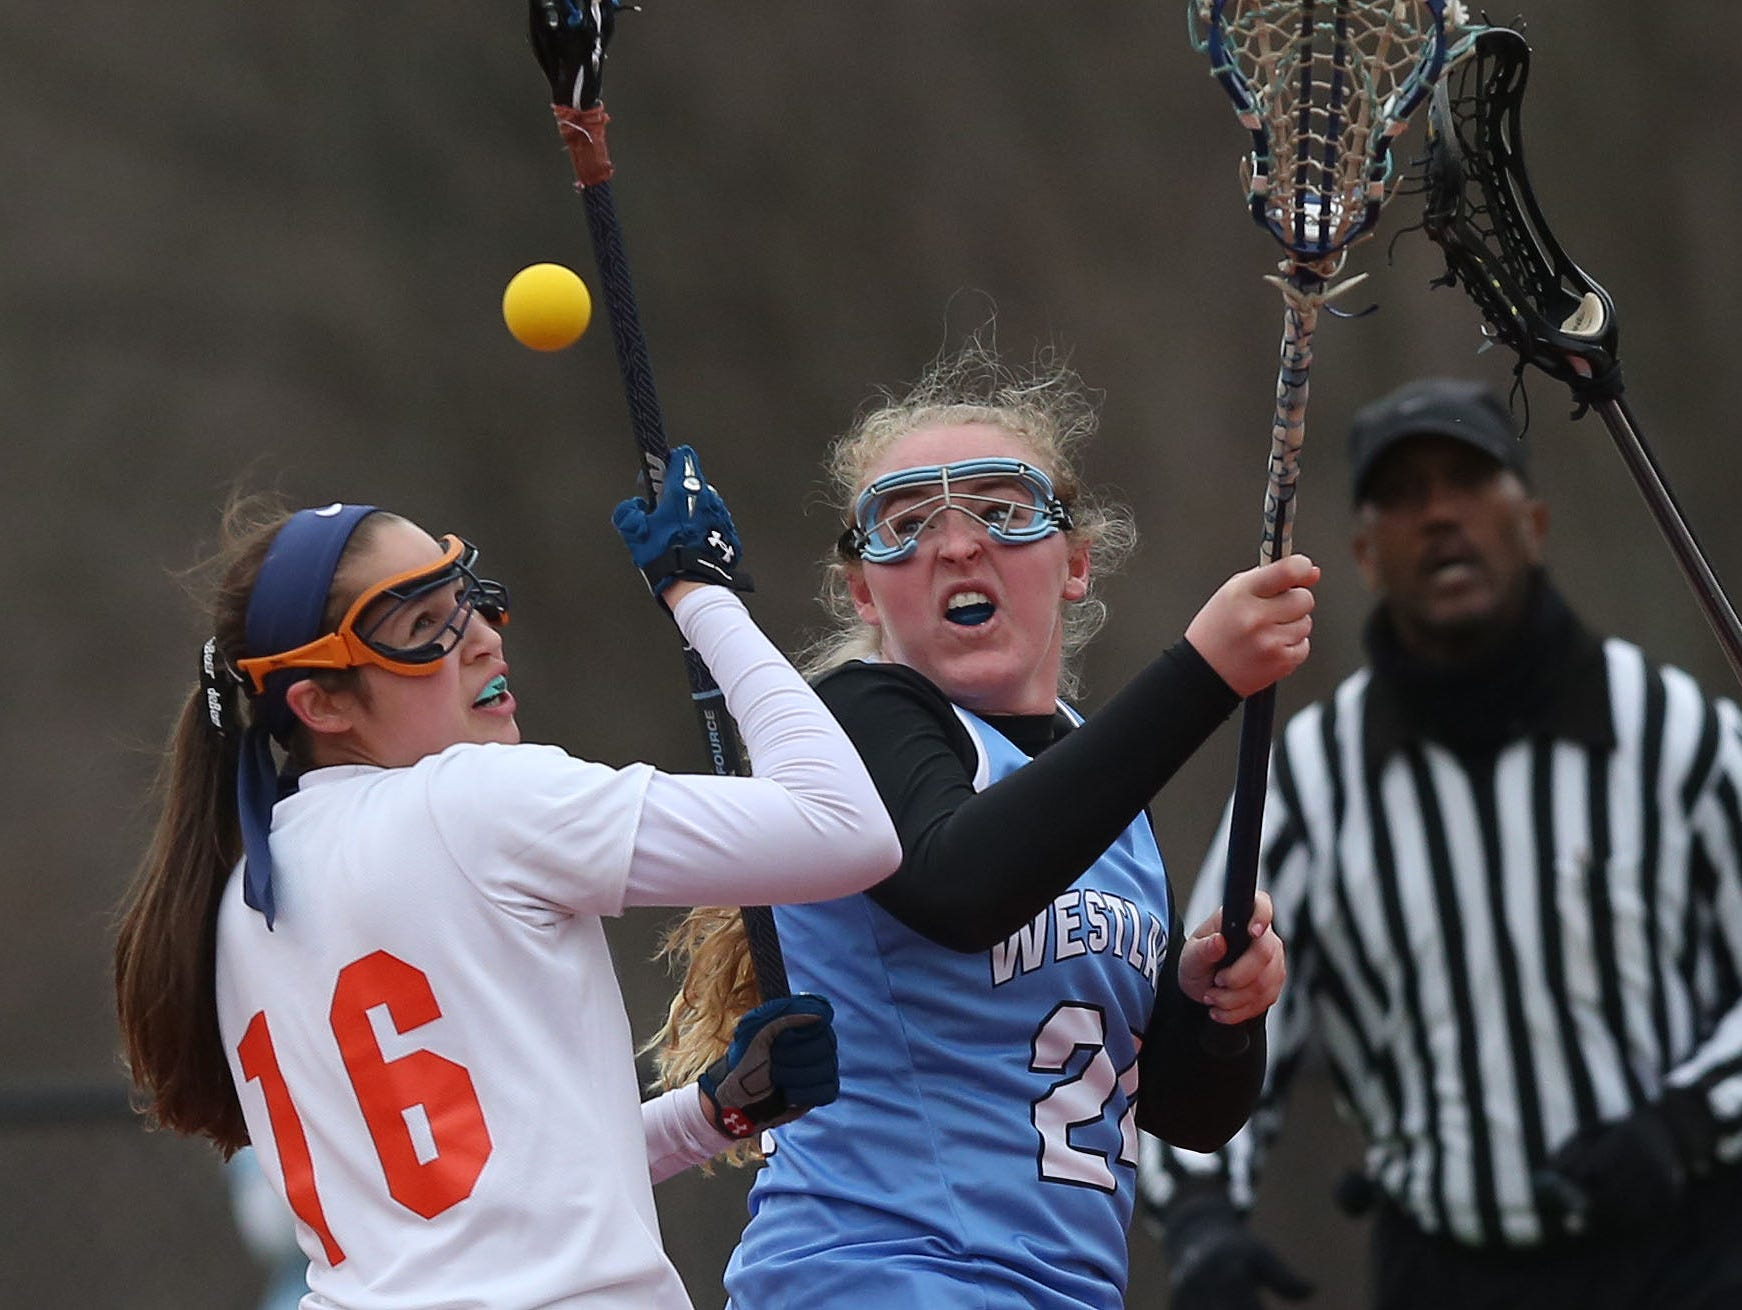 From left, Briarcliff's Jordana Cohen (16) and Westlake's Lauren Holzer (24) battle for ball control during first half action in the championship game of the Mt. Pleasant Cup girls lacrosse tournament at Briarcliff High School March 24, 2016. Briarcliff won the game 15-9.